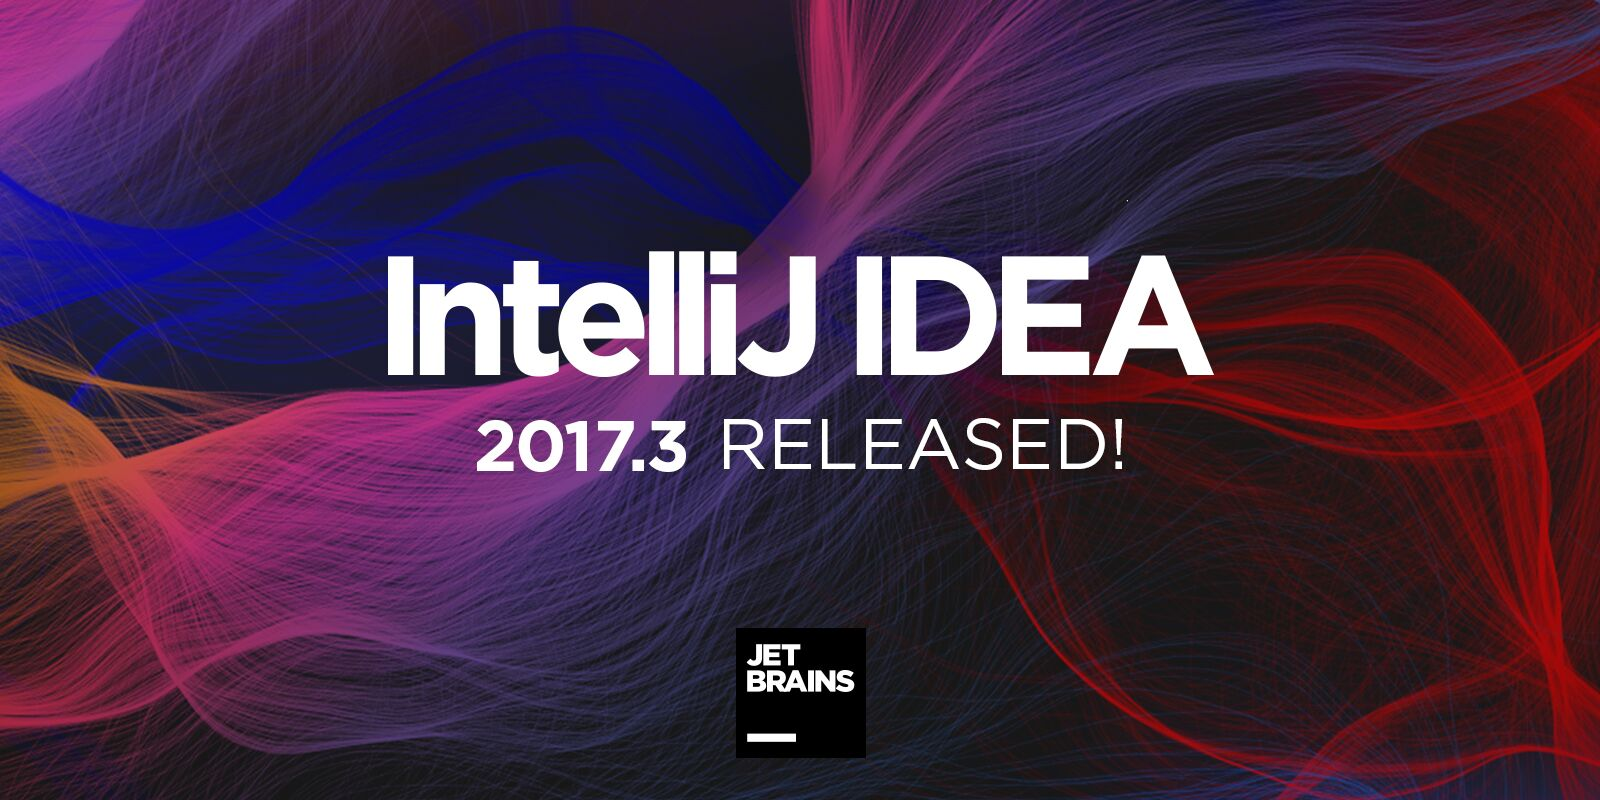 IntelliJ IDEA 2017.3, Google's Poly API, and Microsoft Edge for iOS and Android